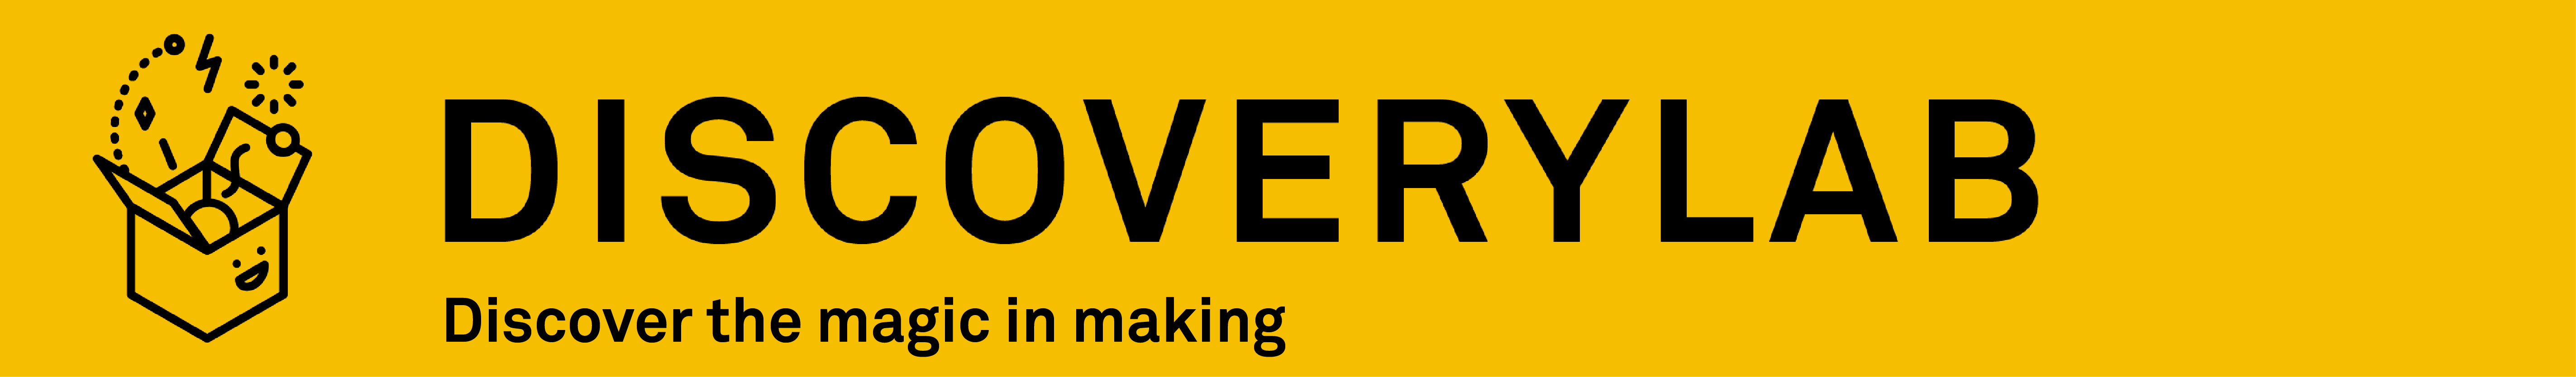 "DiscoveryLab Banner. Text: ""DiscoveryLab: Discover the Magic in Making"""